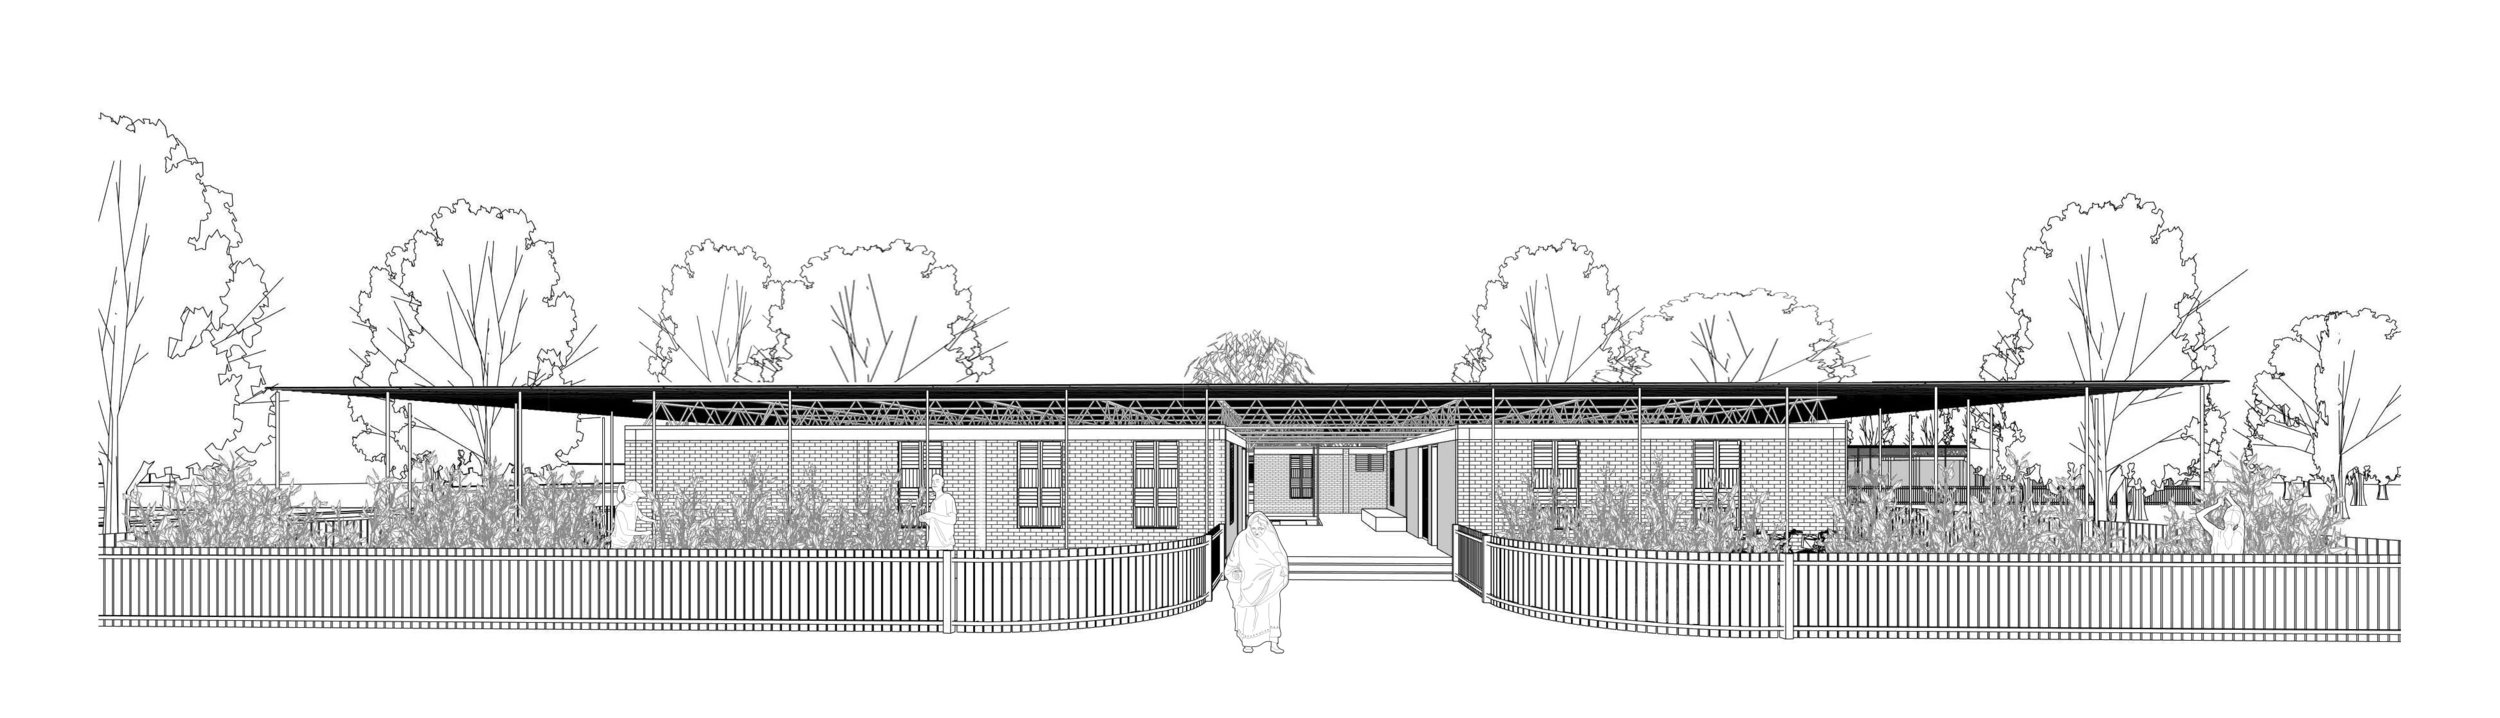 Planning Level information - Proposed perspective view of the Modular School entrance